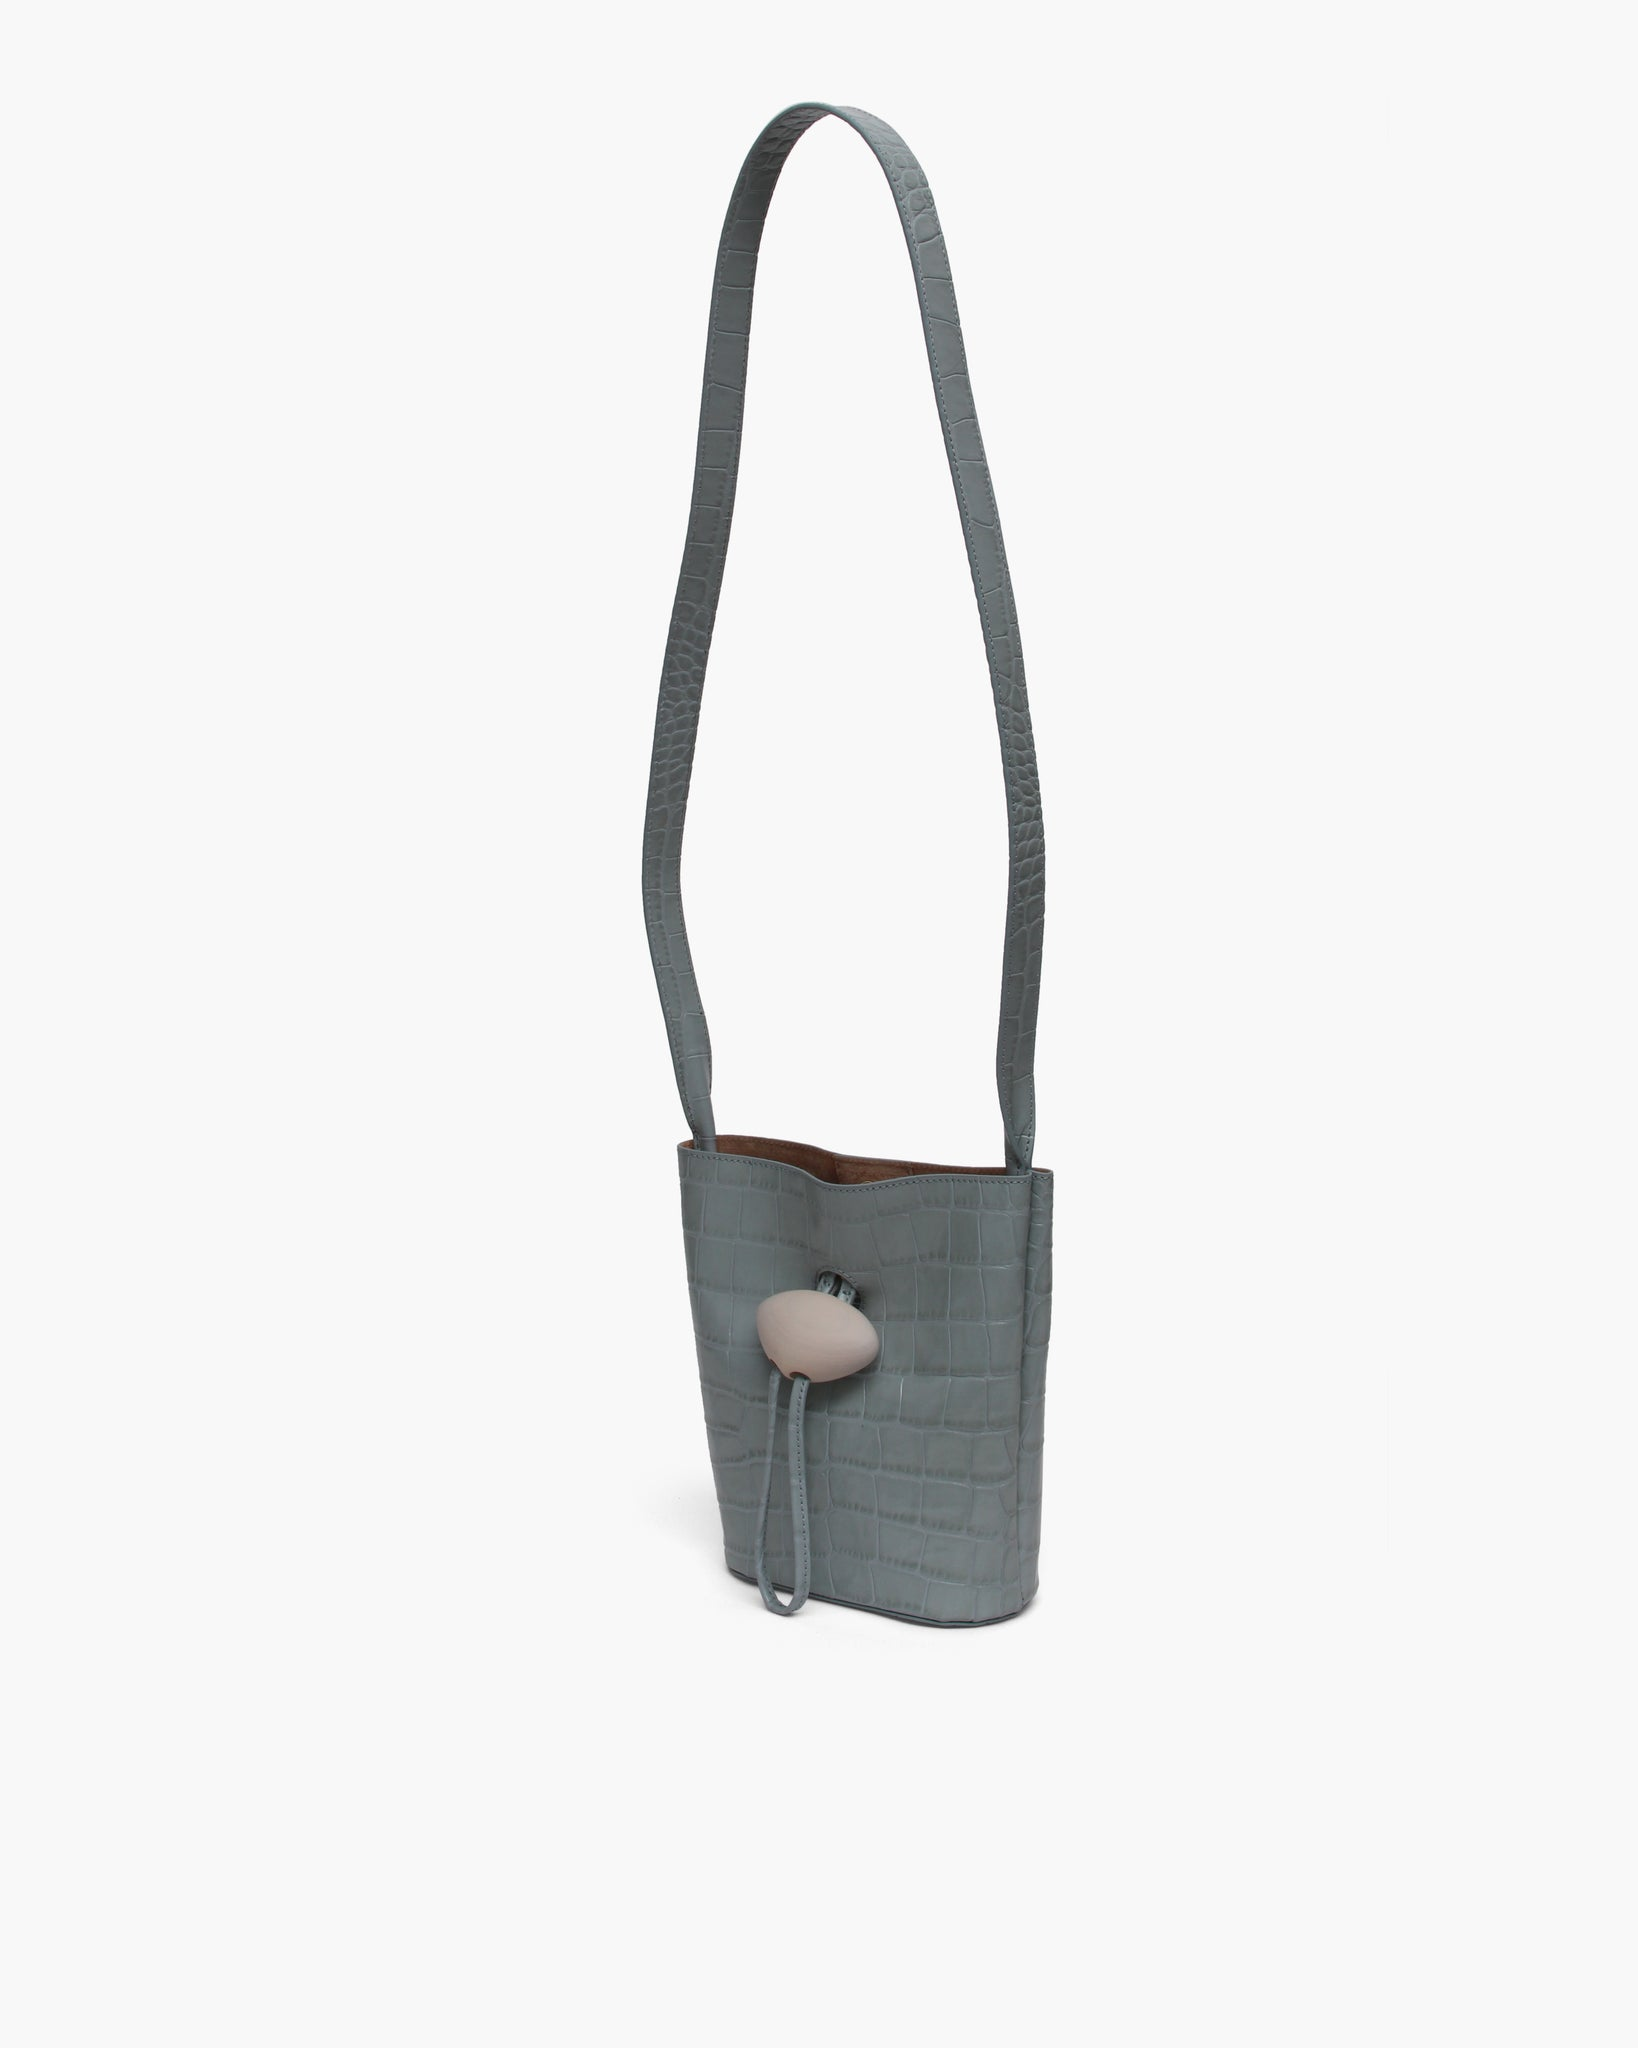 Camila Bag Leather Duck Egg + White Wood - SPECIAL PRICE